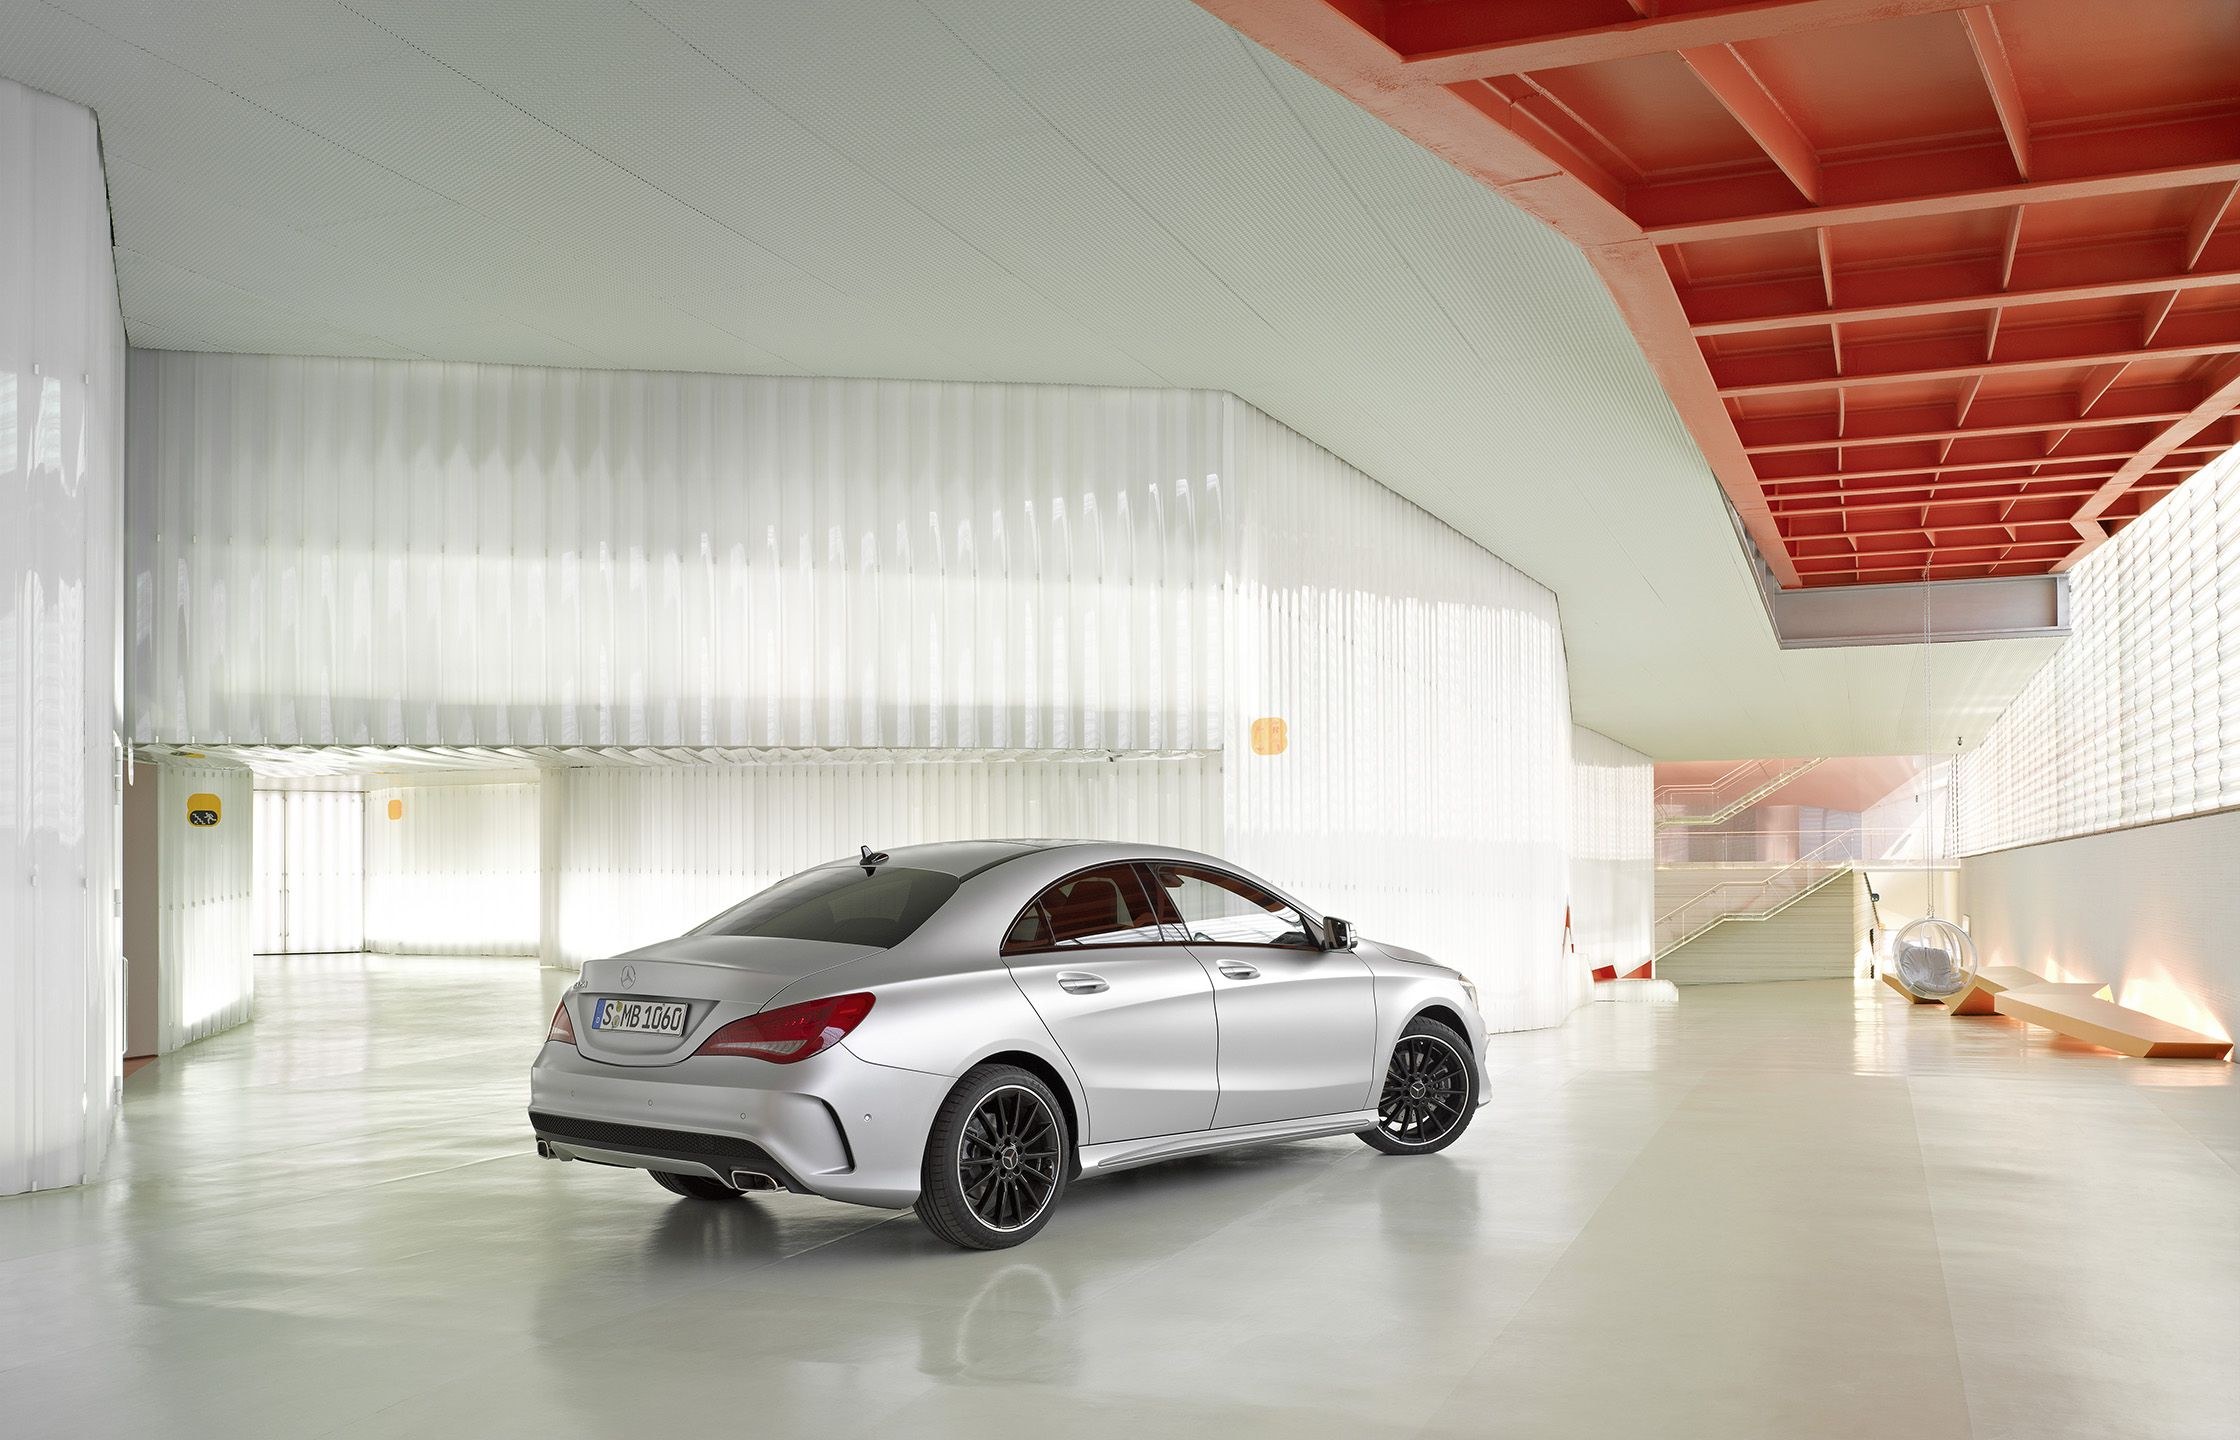 The new Mercedes Benz CLA marries progressive design with innovative